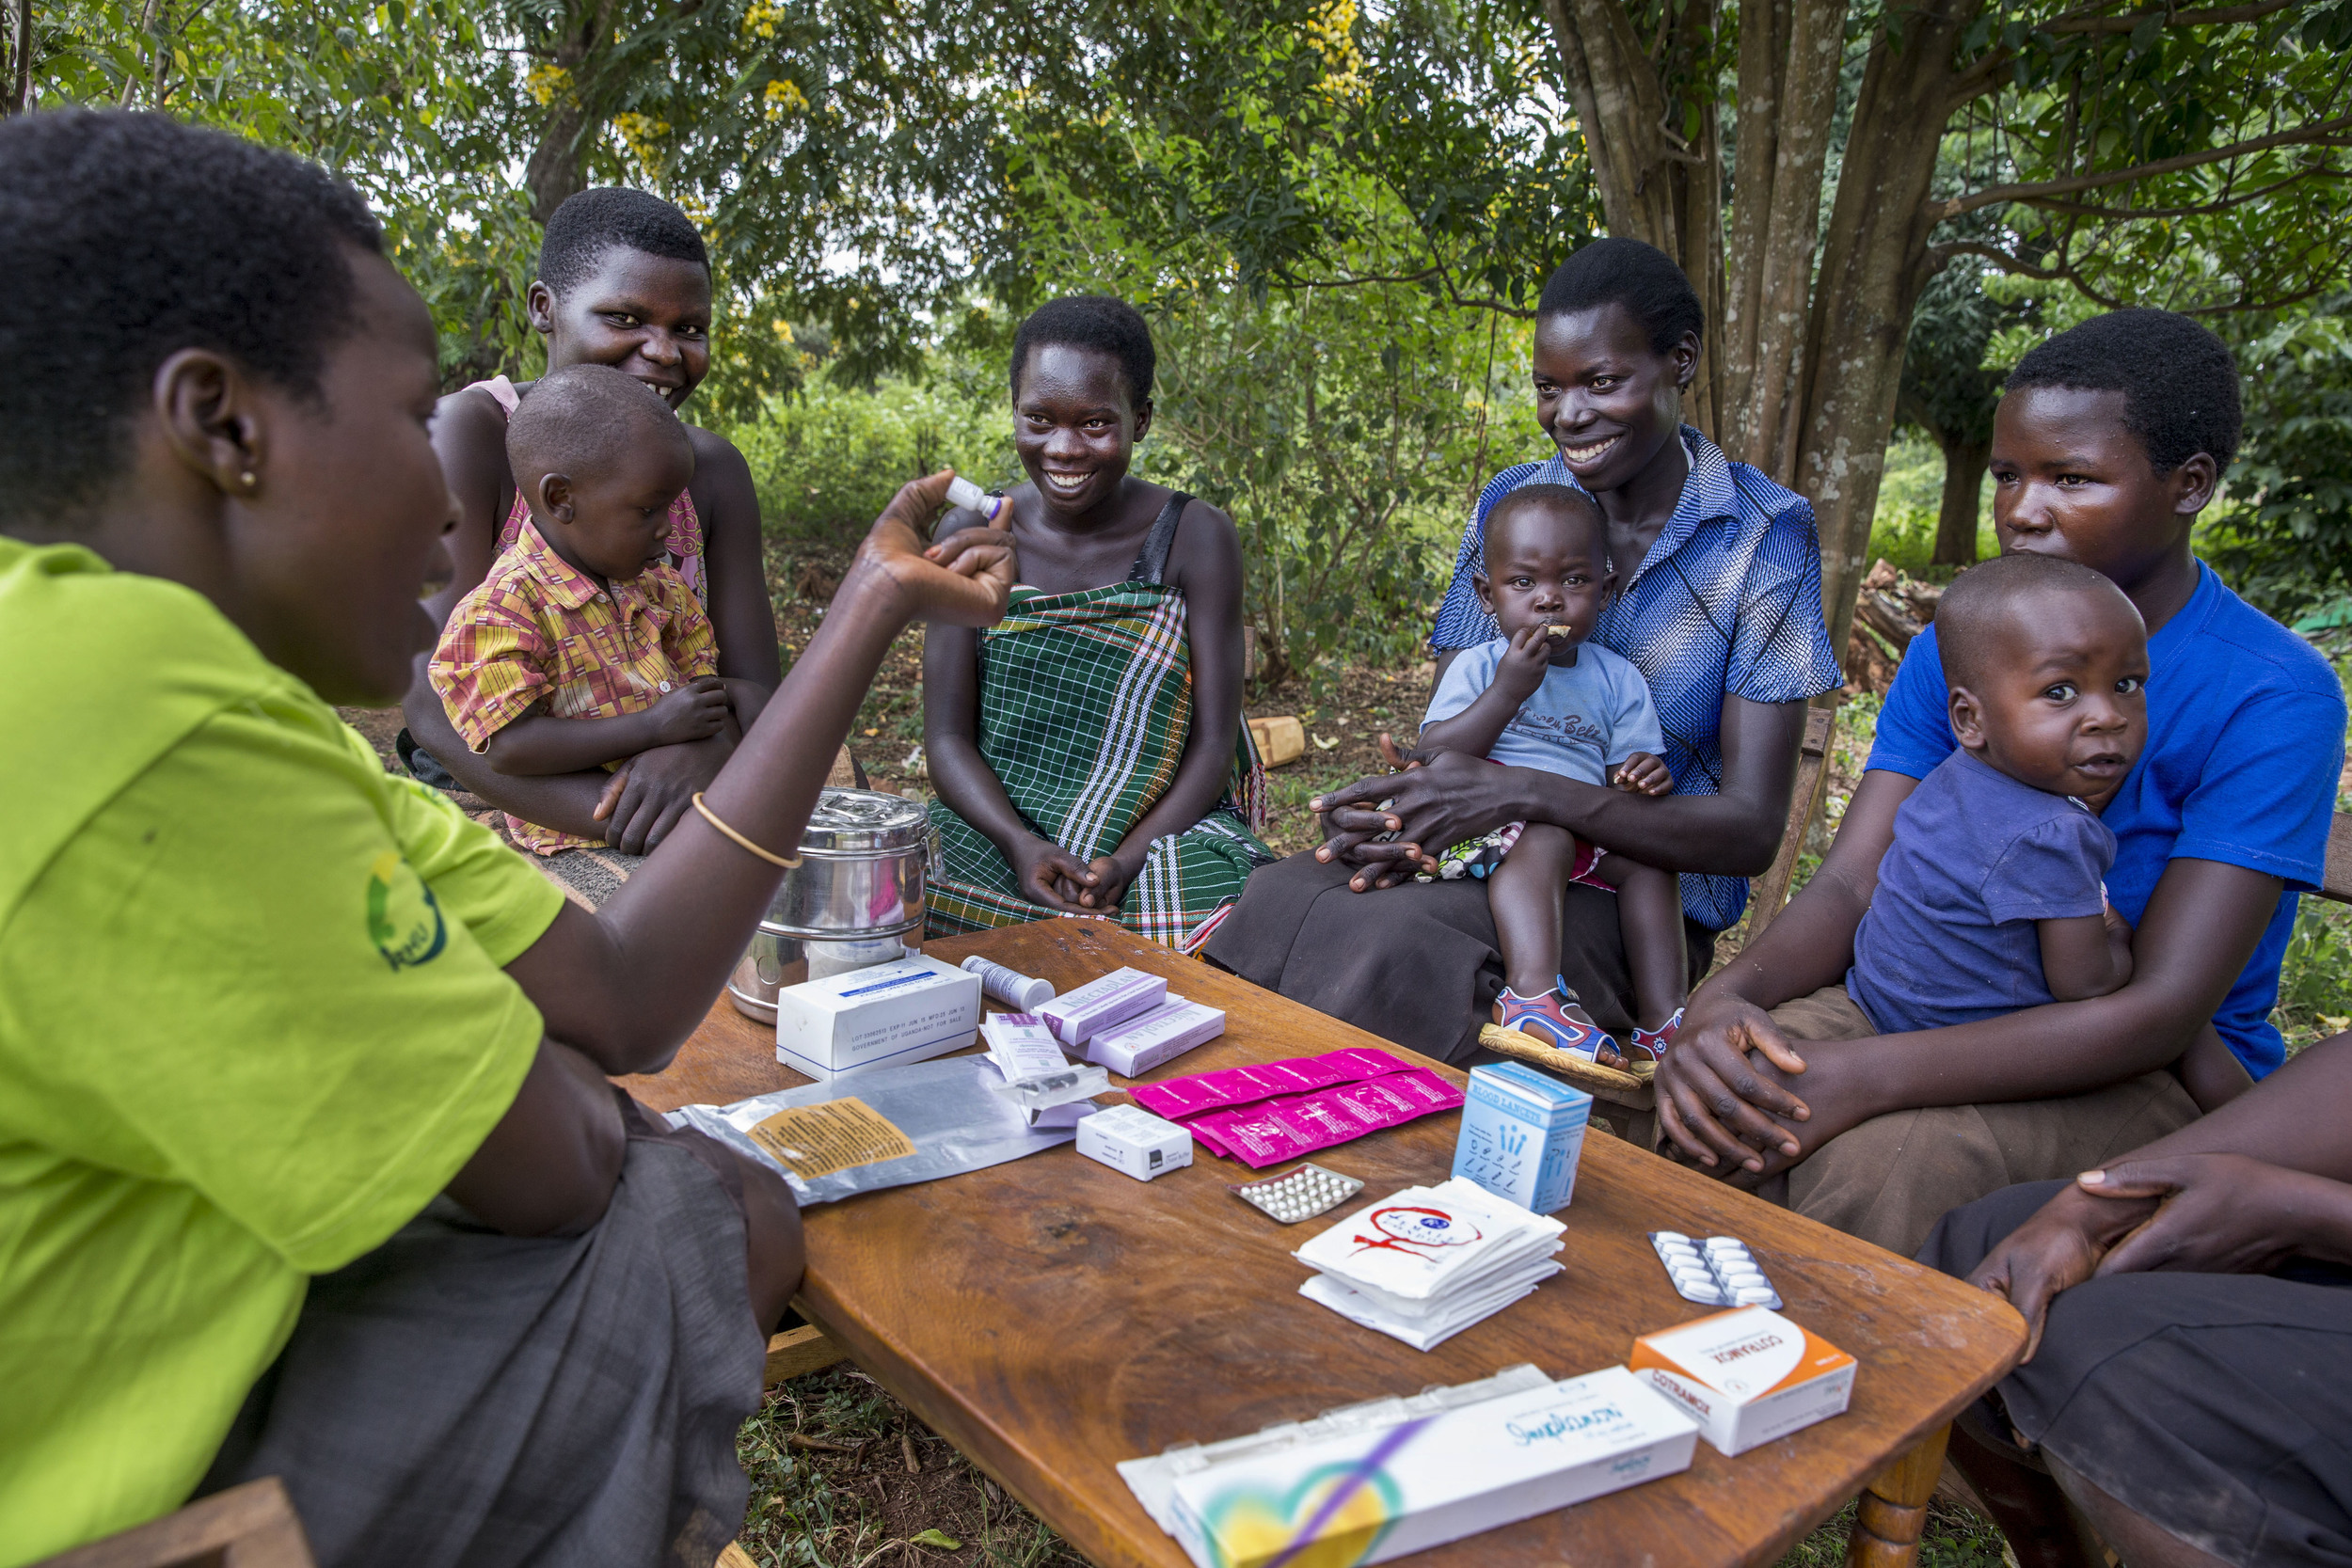 Uganda's Kapchorwa District Government Council Approves Community-Led Framework to Monitor Family Planning Supplies